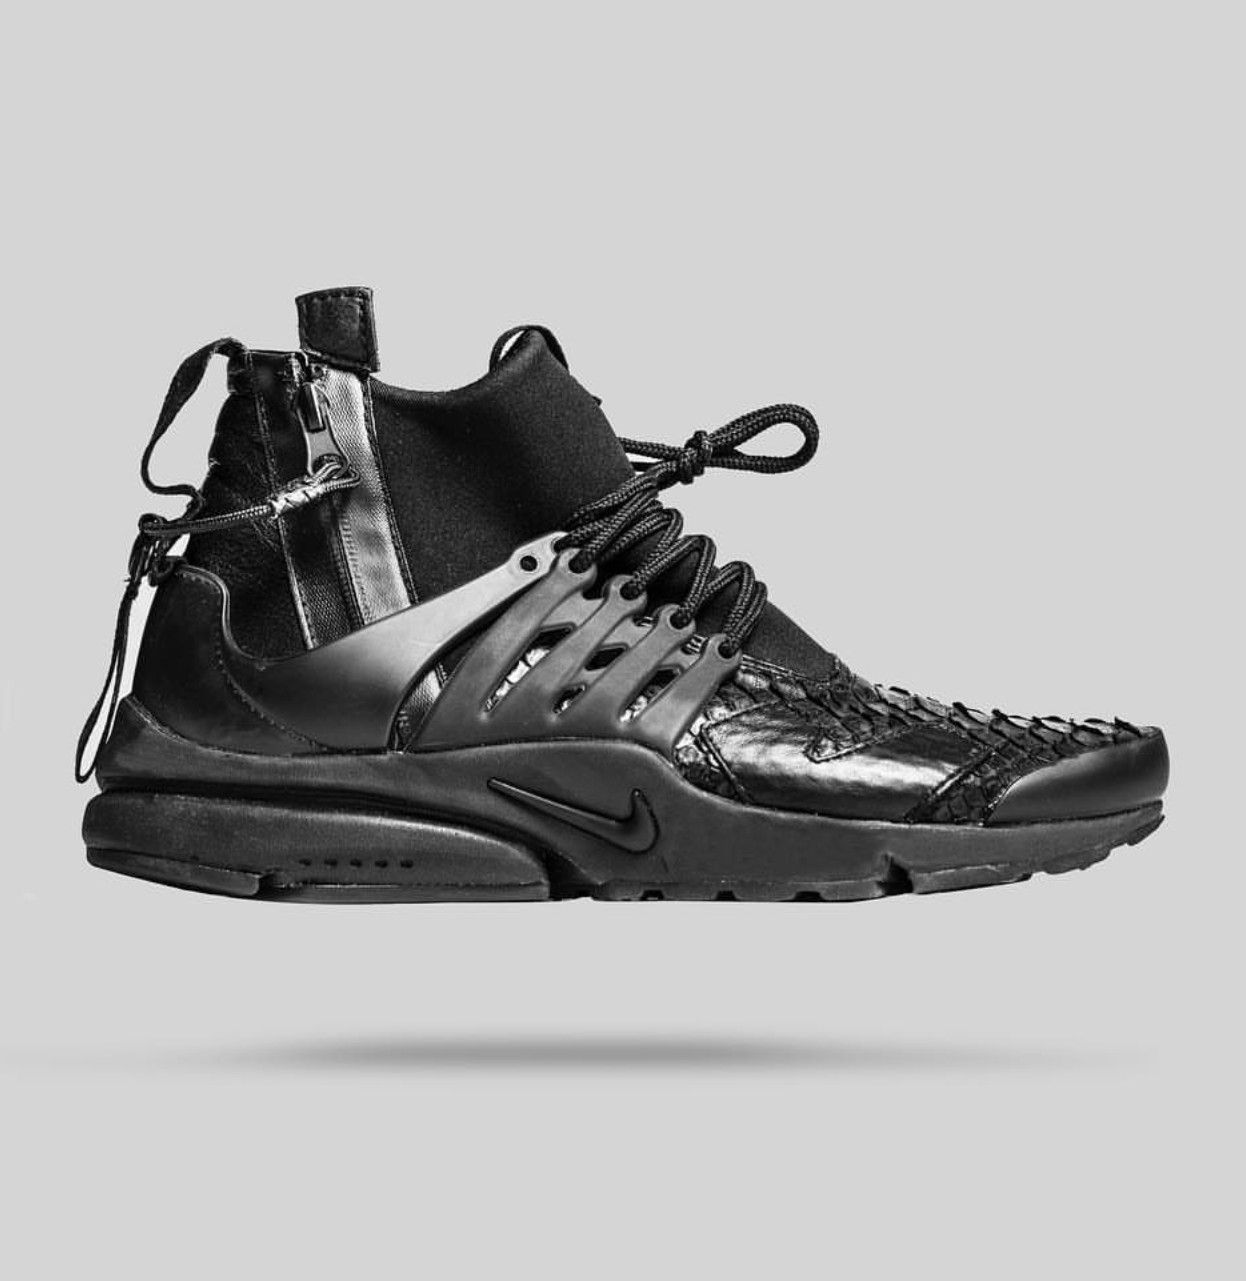 8165da2f59 official store nike triple black acronym presto lux best sneakers sneakers  fashion high top sneakers 67314